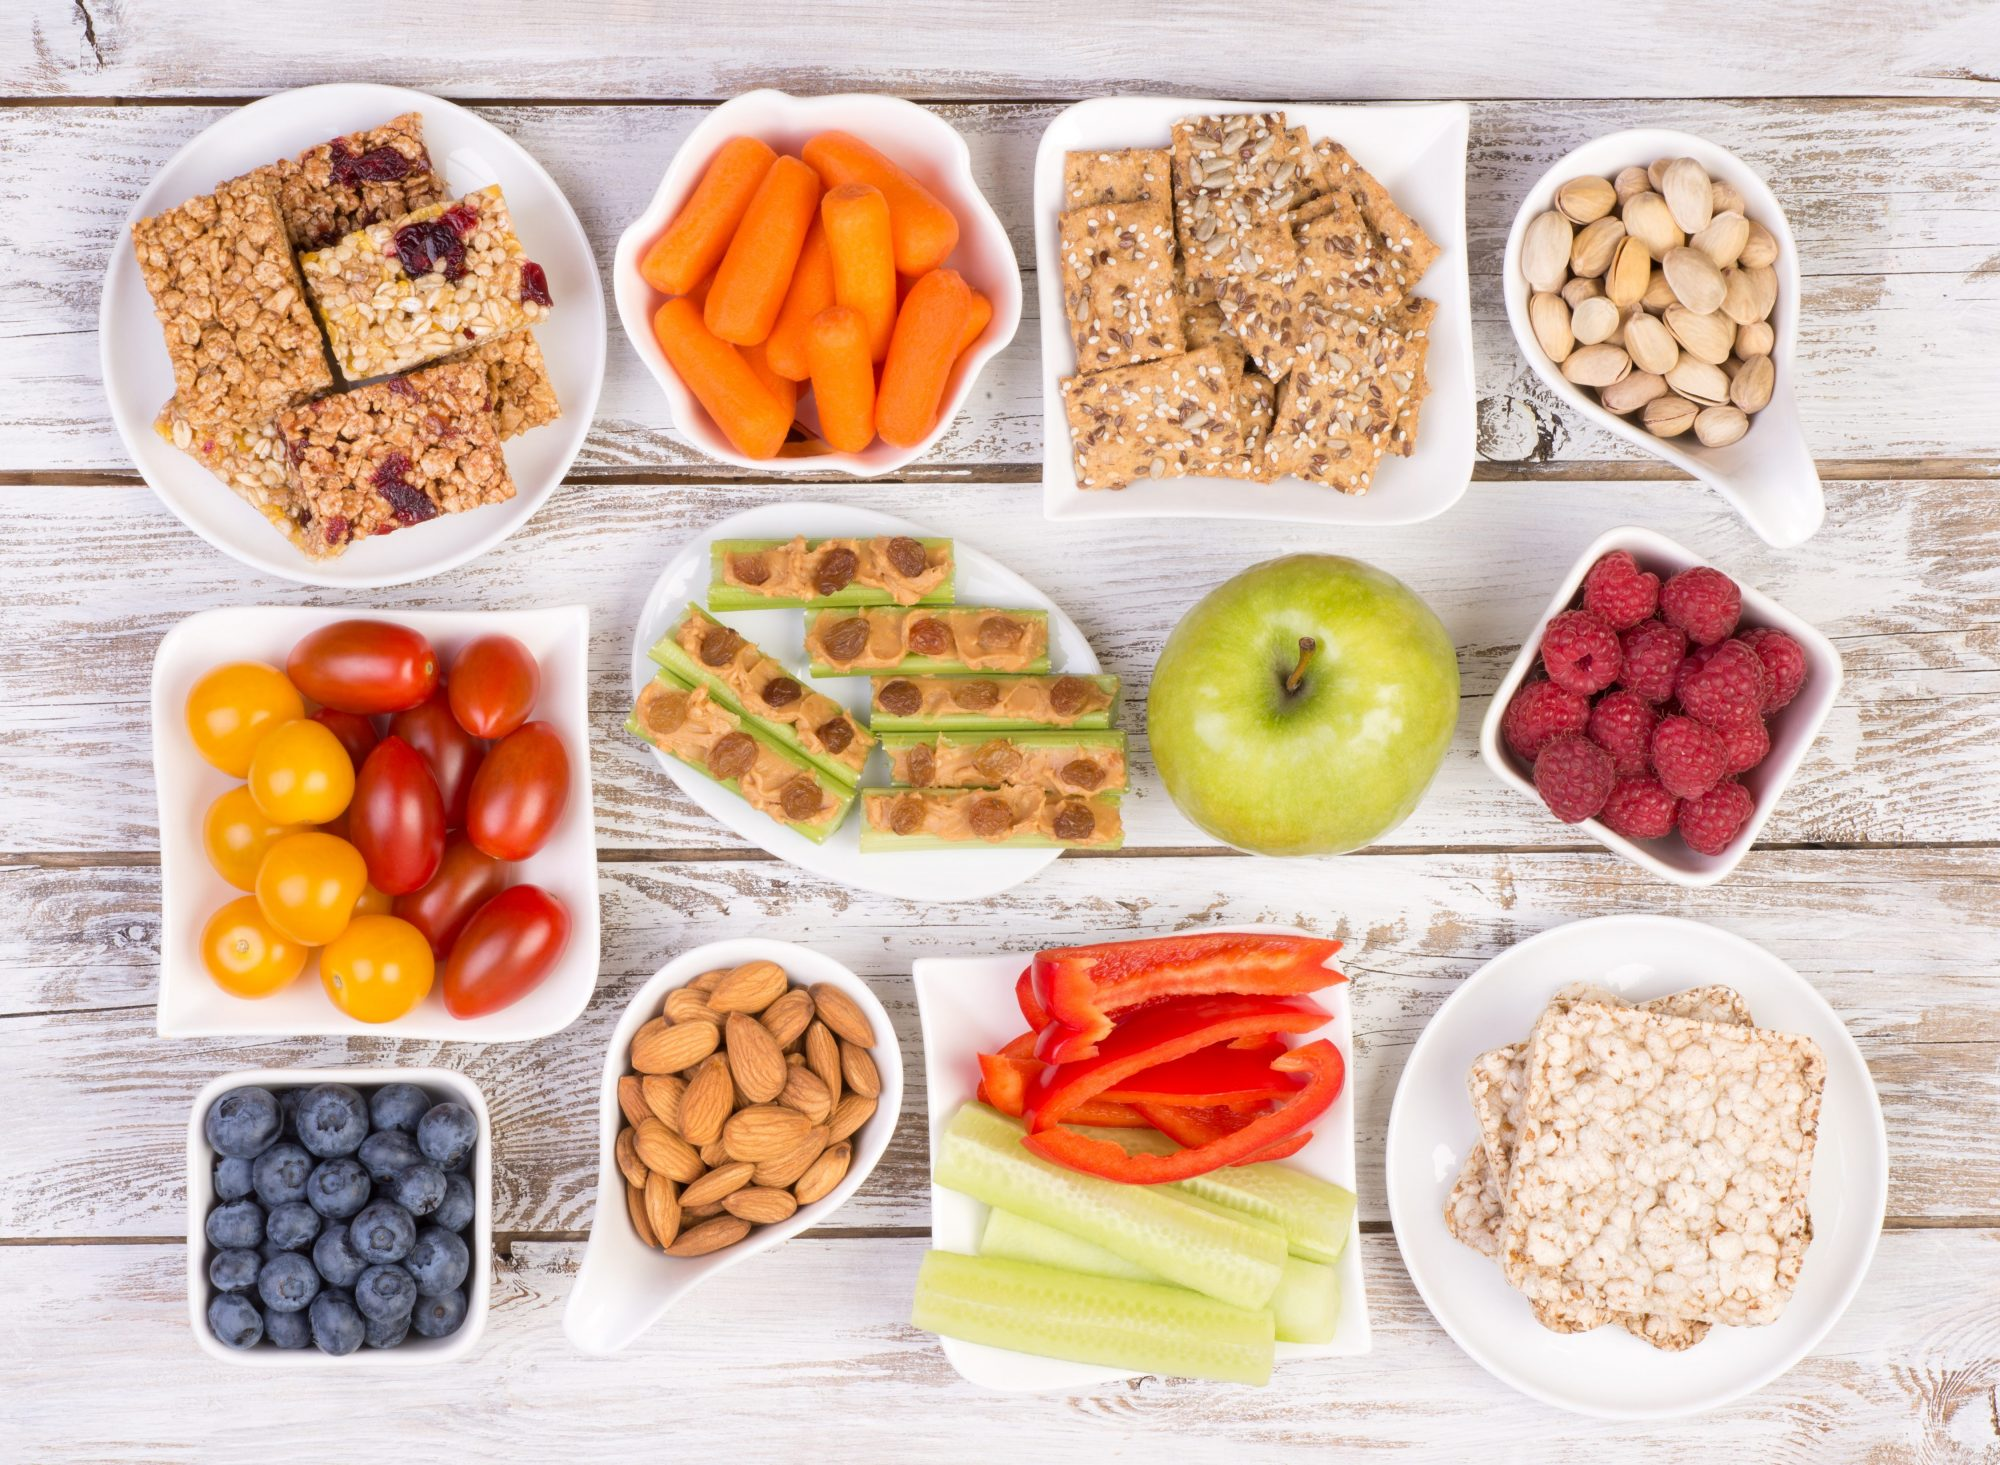 Healthy-snacks-for-kids-and-adults-e1516203651774